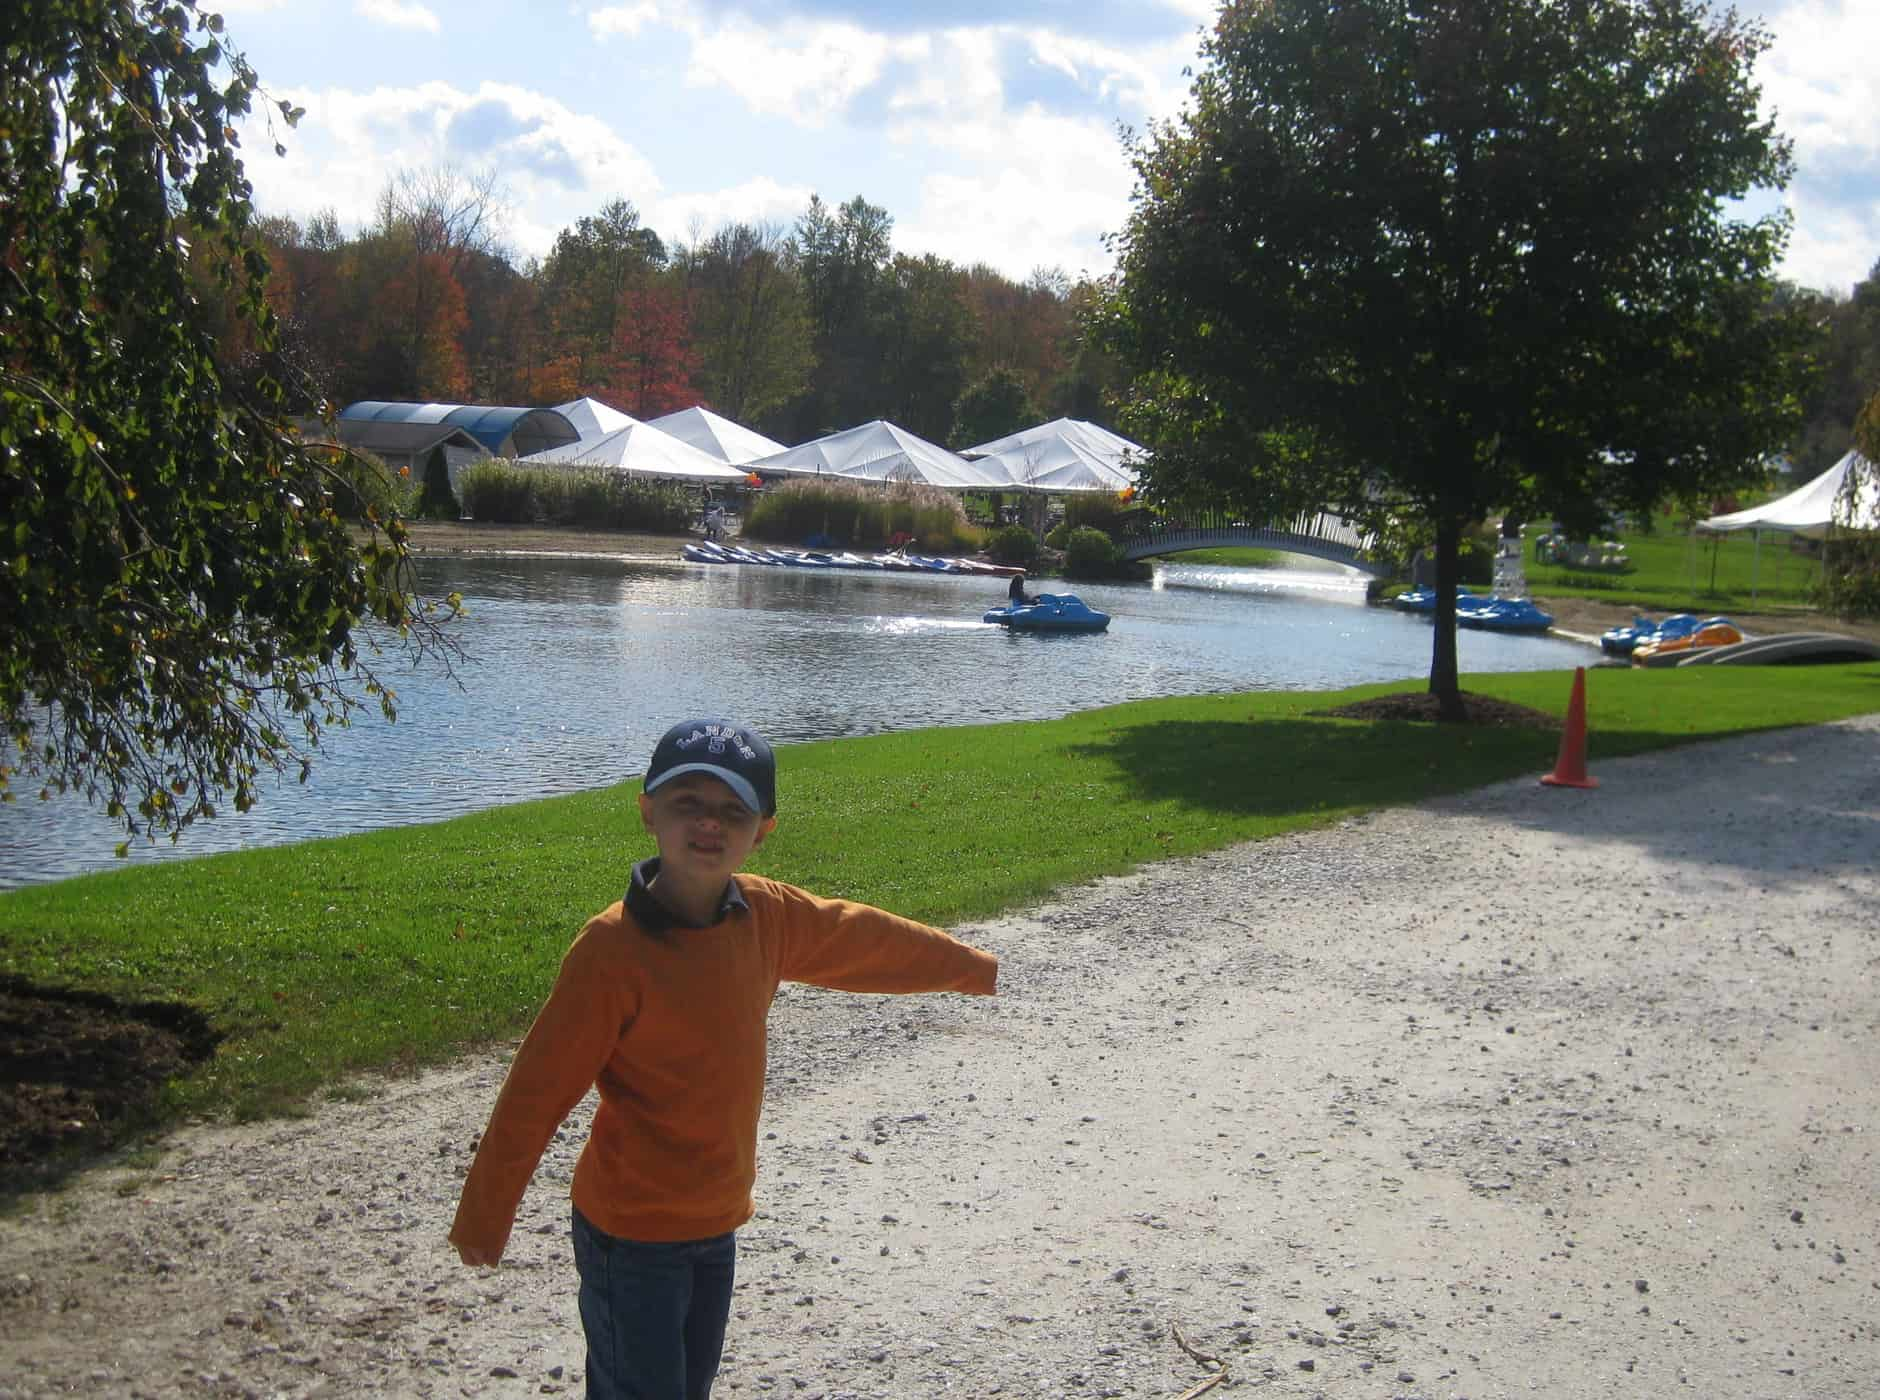 Fall Fair and Pedal Boat Fun